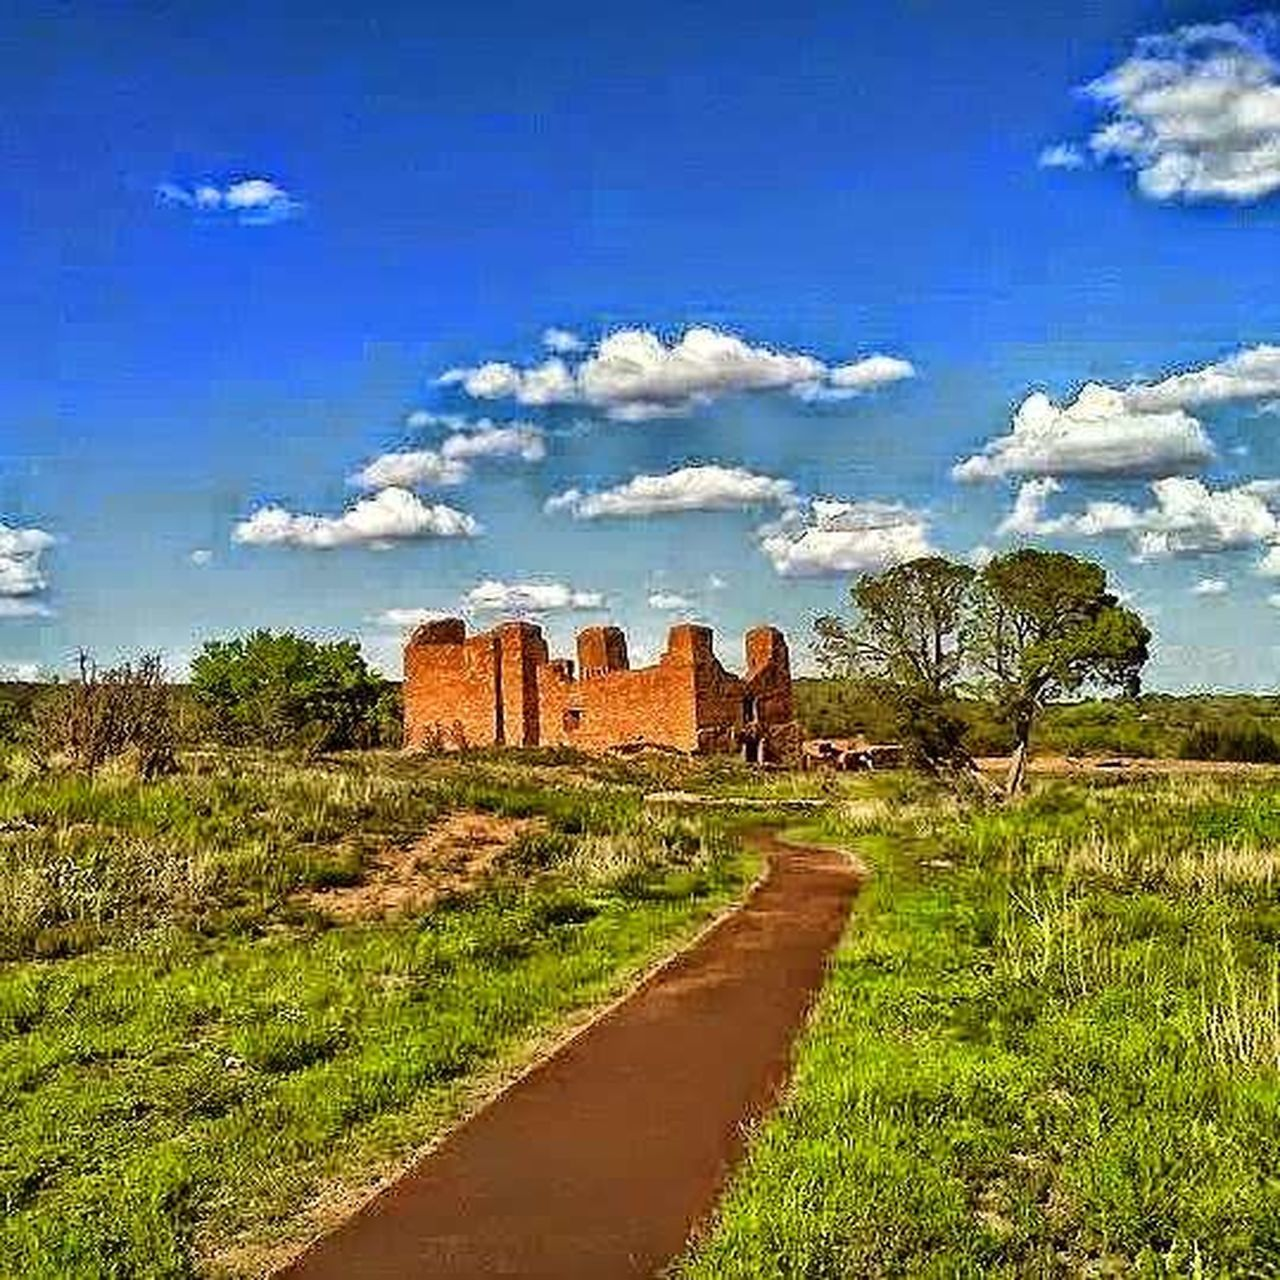 Quarai Ruins Manzano, NM Sky Cloud - Sky History The Past Blue Architecture Ancient Built Structure Old Ruin War Tree Monument Outdoors Travel Destinations Ancient History No People Scenics Grass Nature Medieval